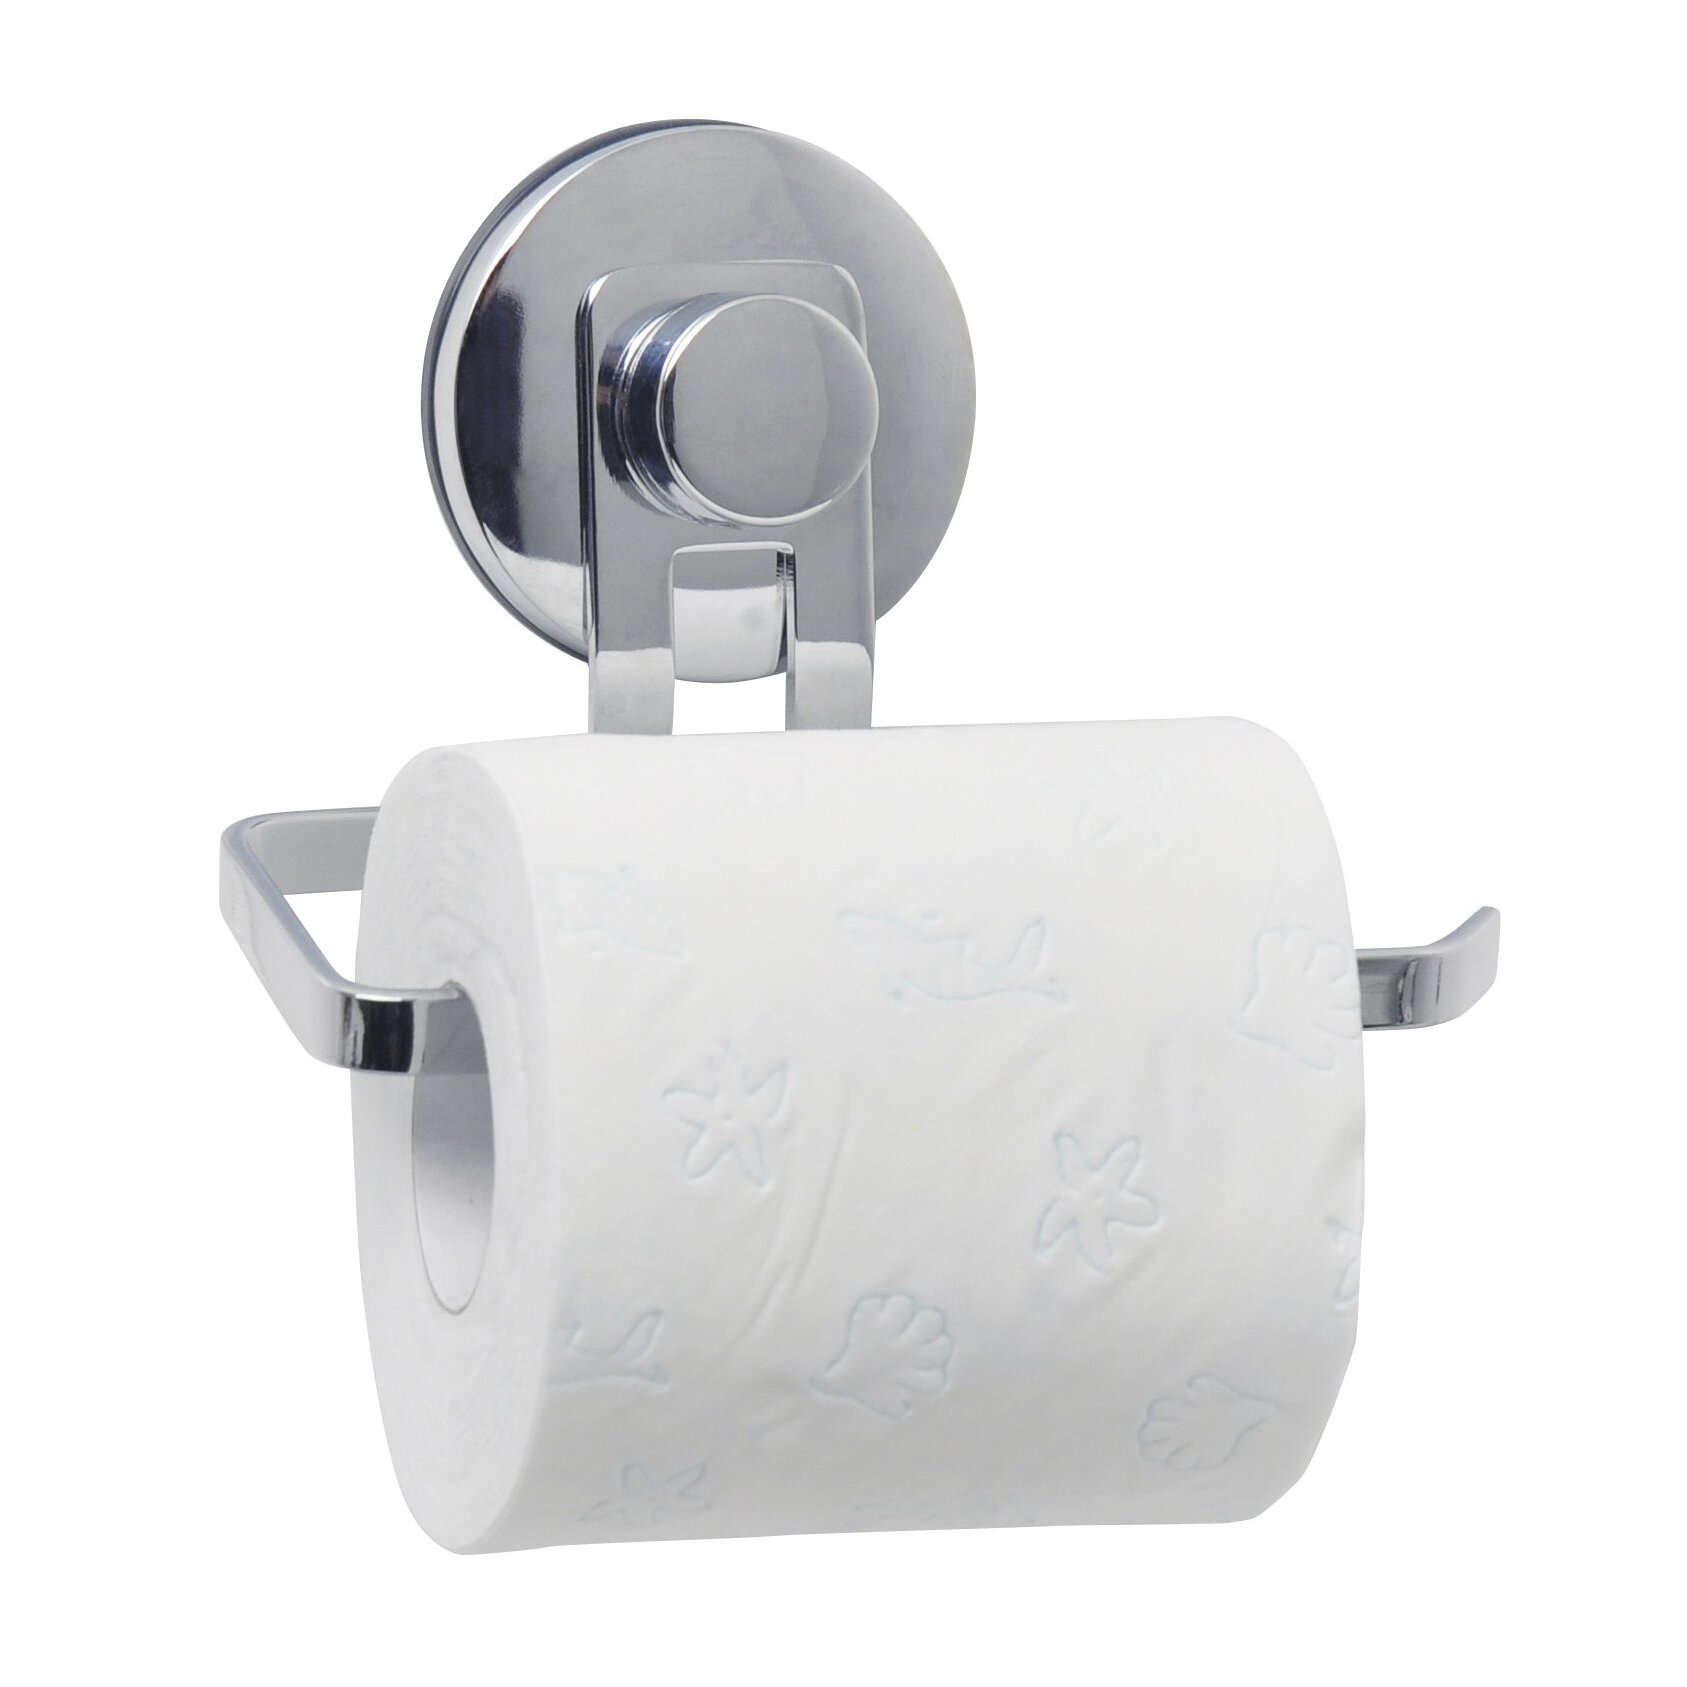 everloc solutions wall mounted toilet paper holder. Black Bedroom Furniture Sets. Home Design Ideas